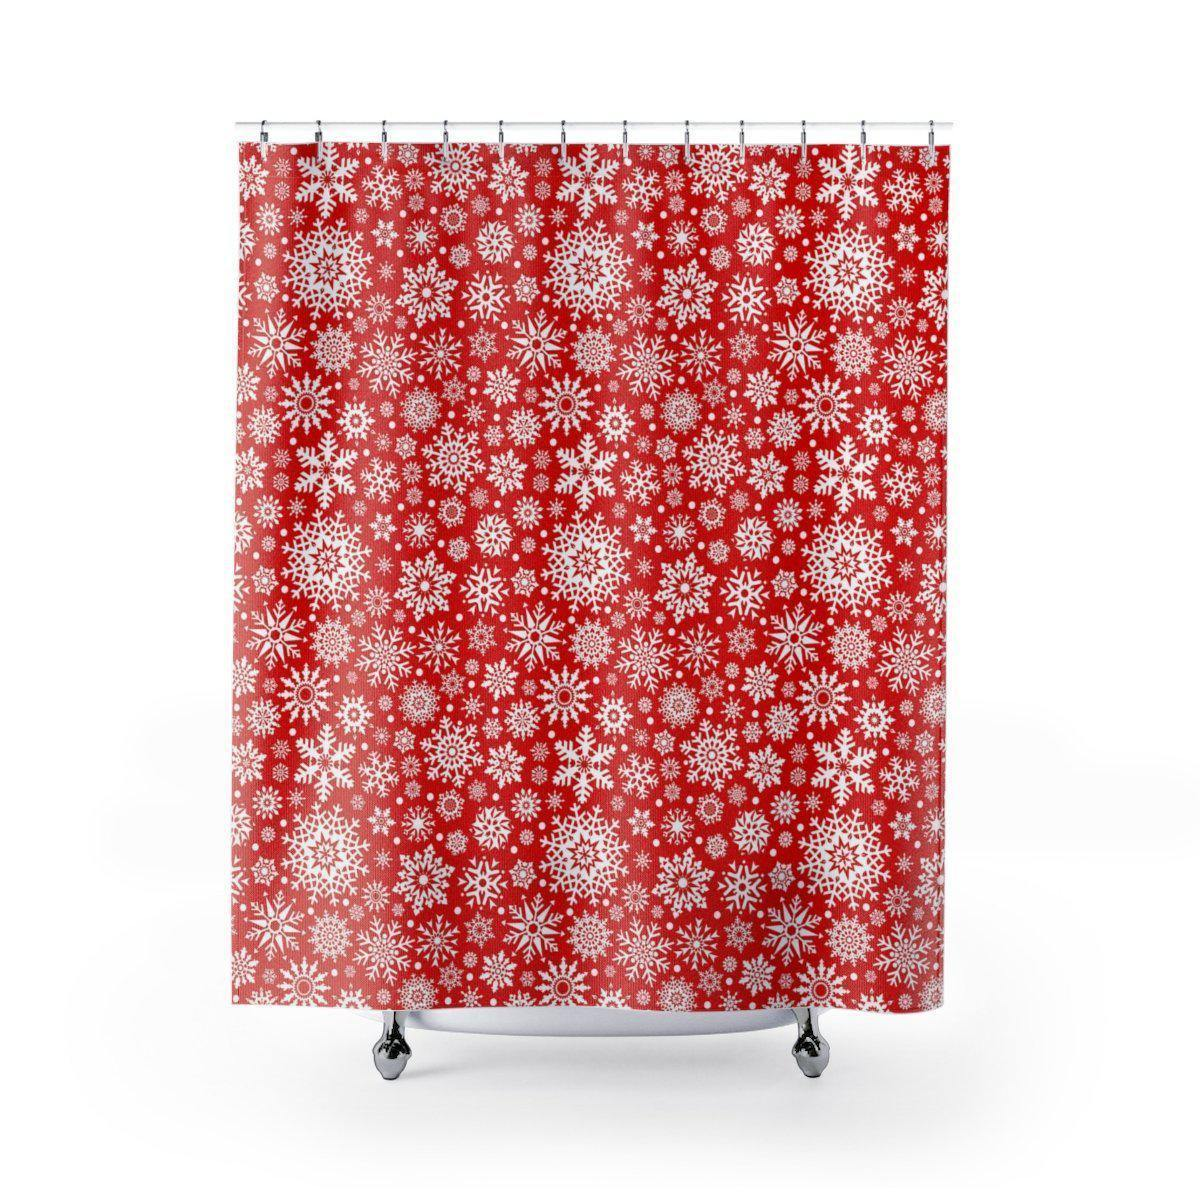 Snowflake Christmas Shower Curtain-W.FRANCIS